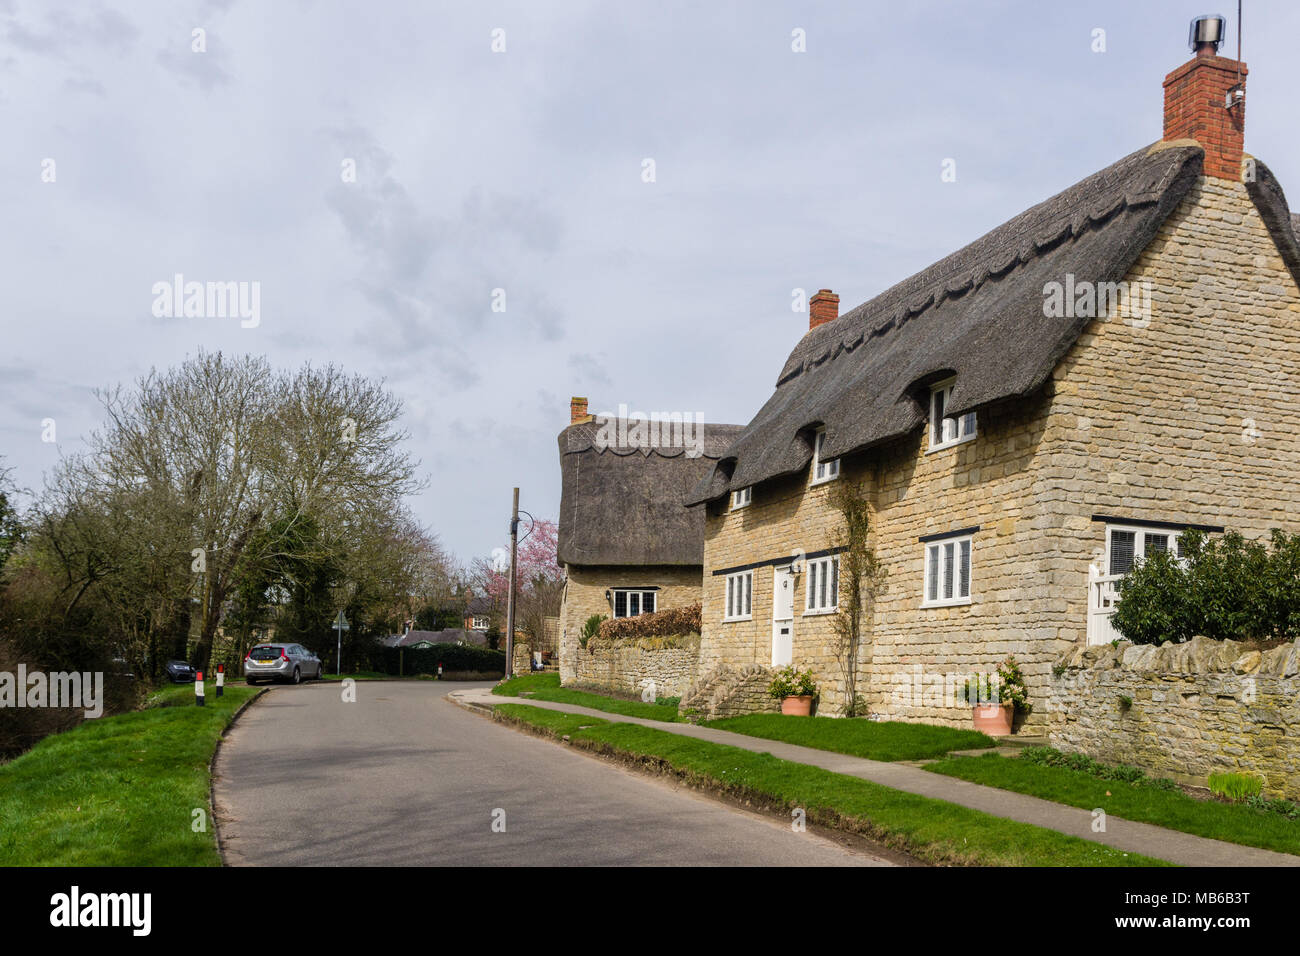 A view of the main street in the pretty village of Ravenstone, Buckinghamshire, UK; with thatched and stone built properties lining. Stock Photo